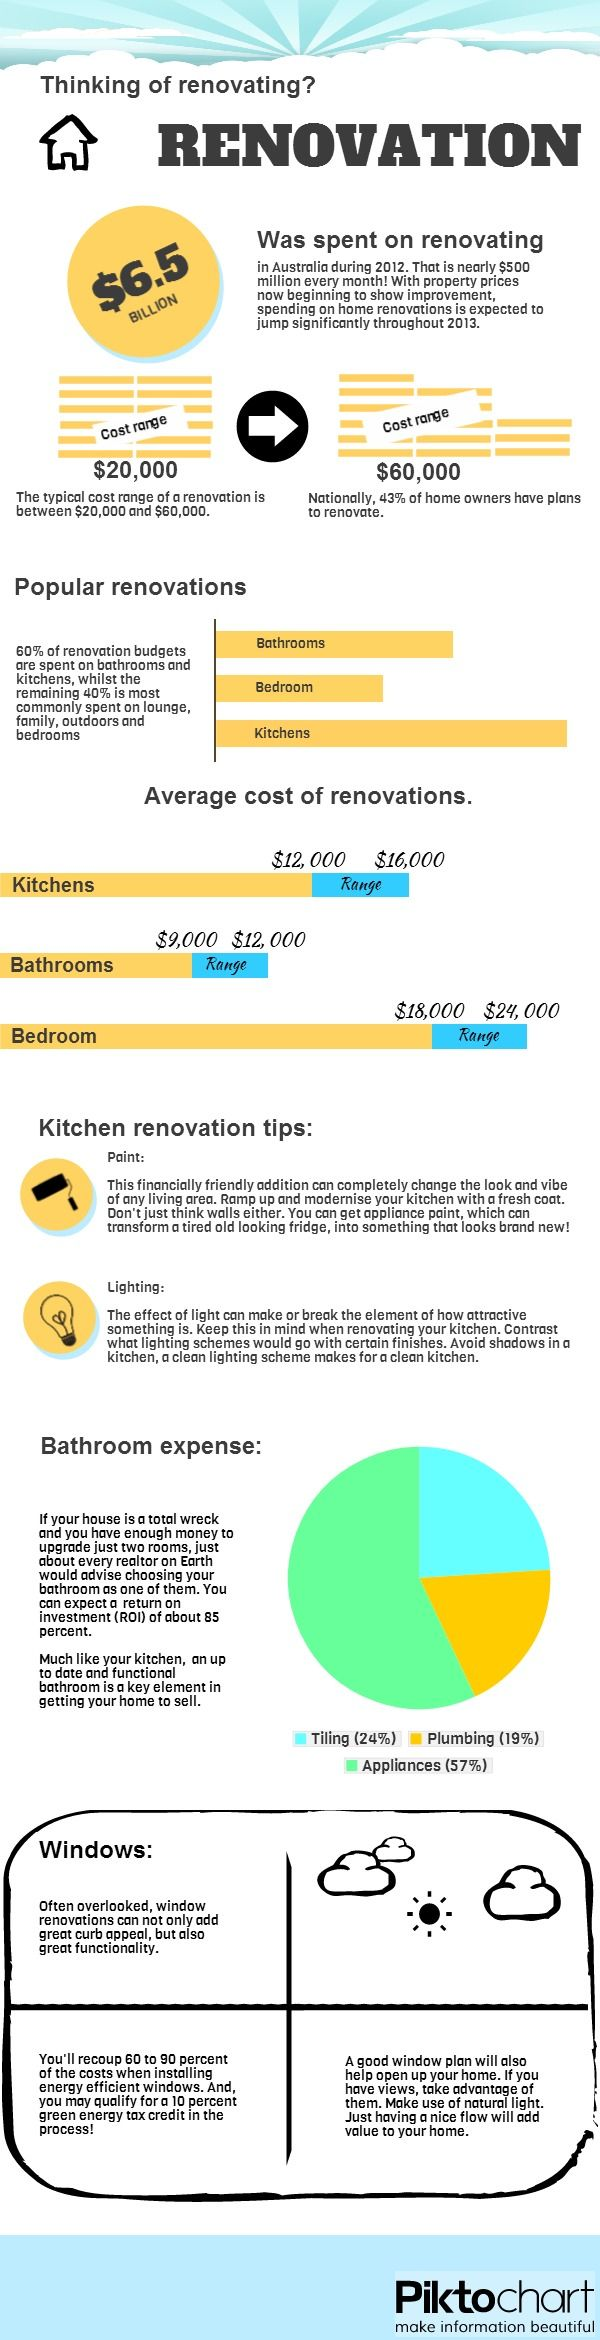 An infographic outling property renovation tips and trends within Australia